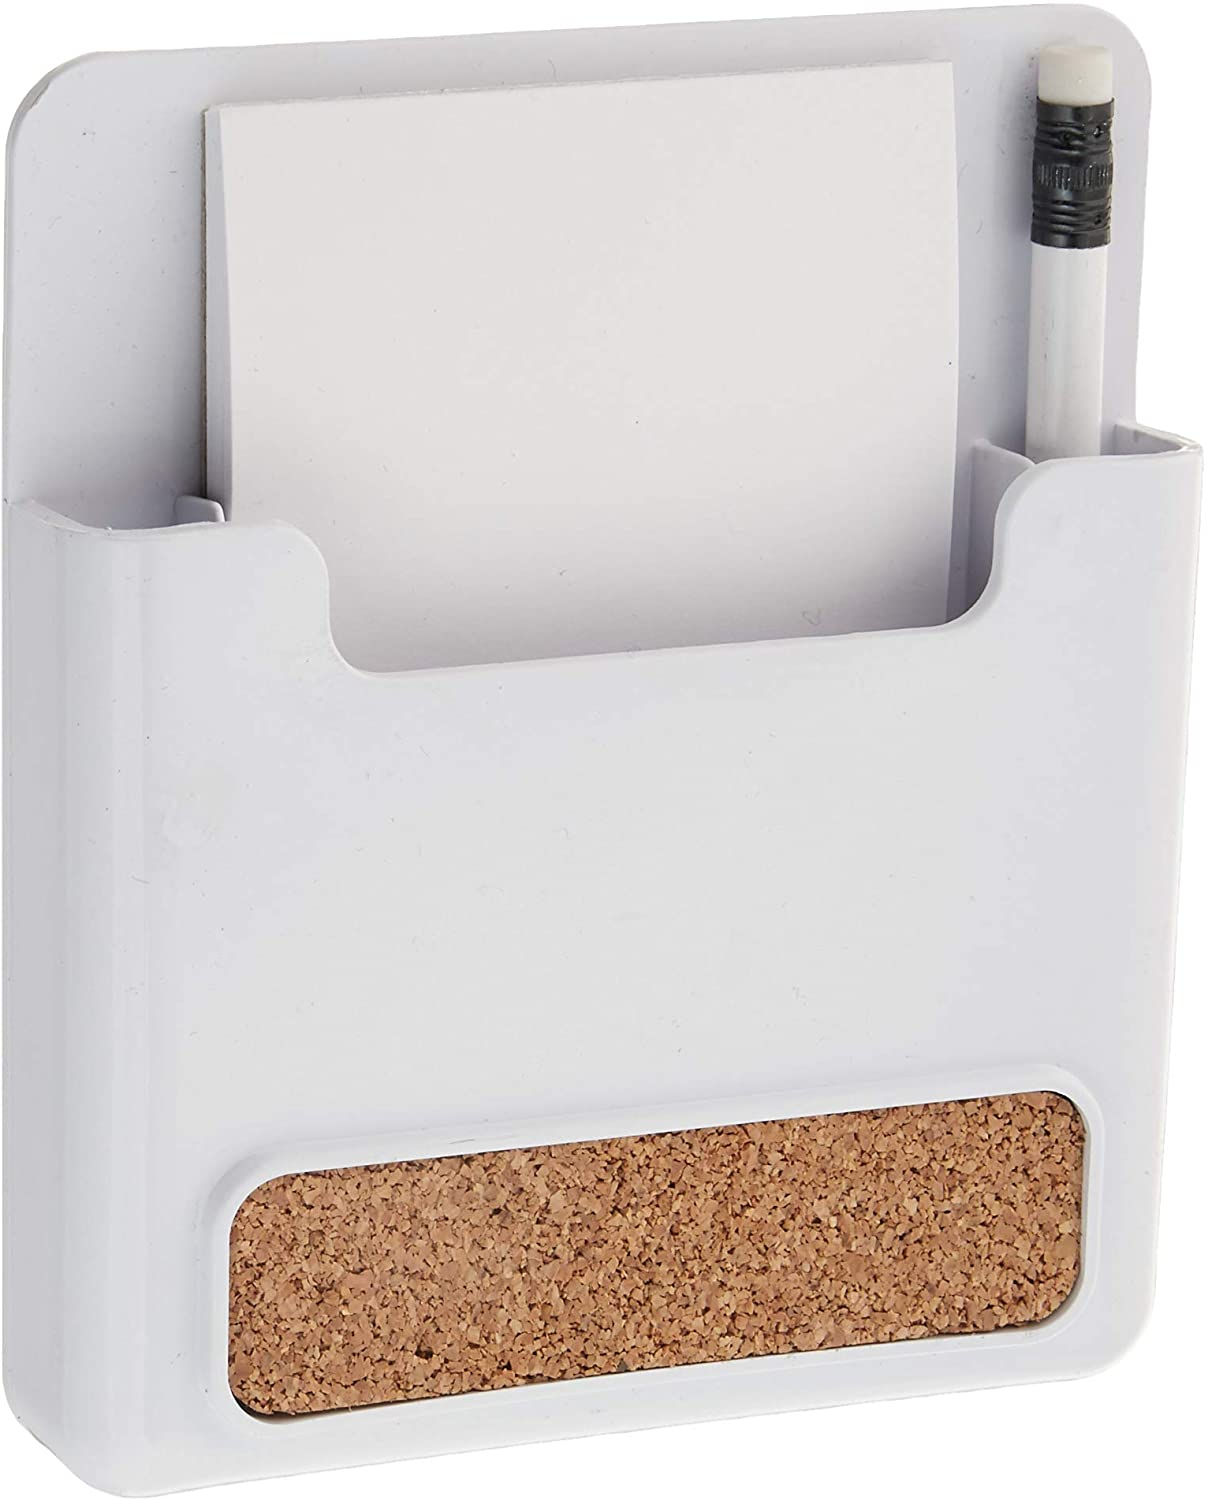 Spectrum Diversified Magnetic Memo Pad and Pencil Holder with Cork Strip, White